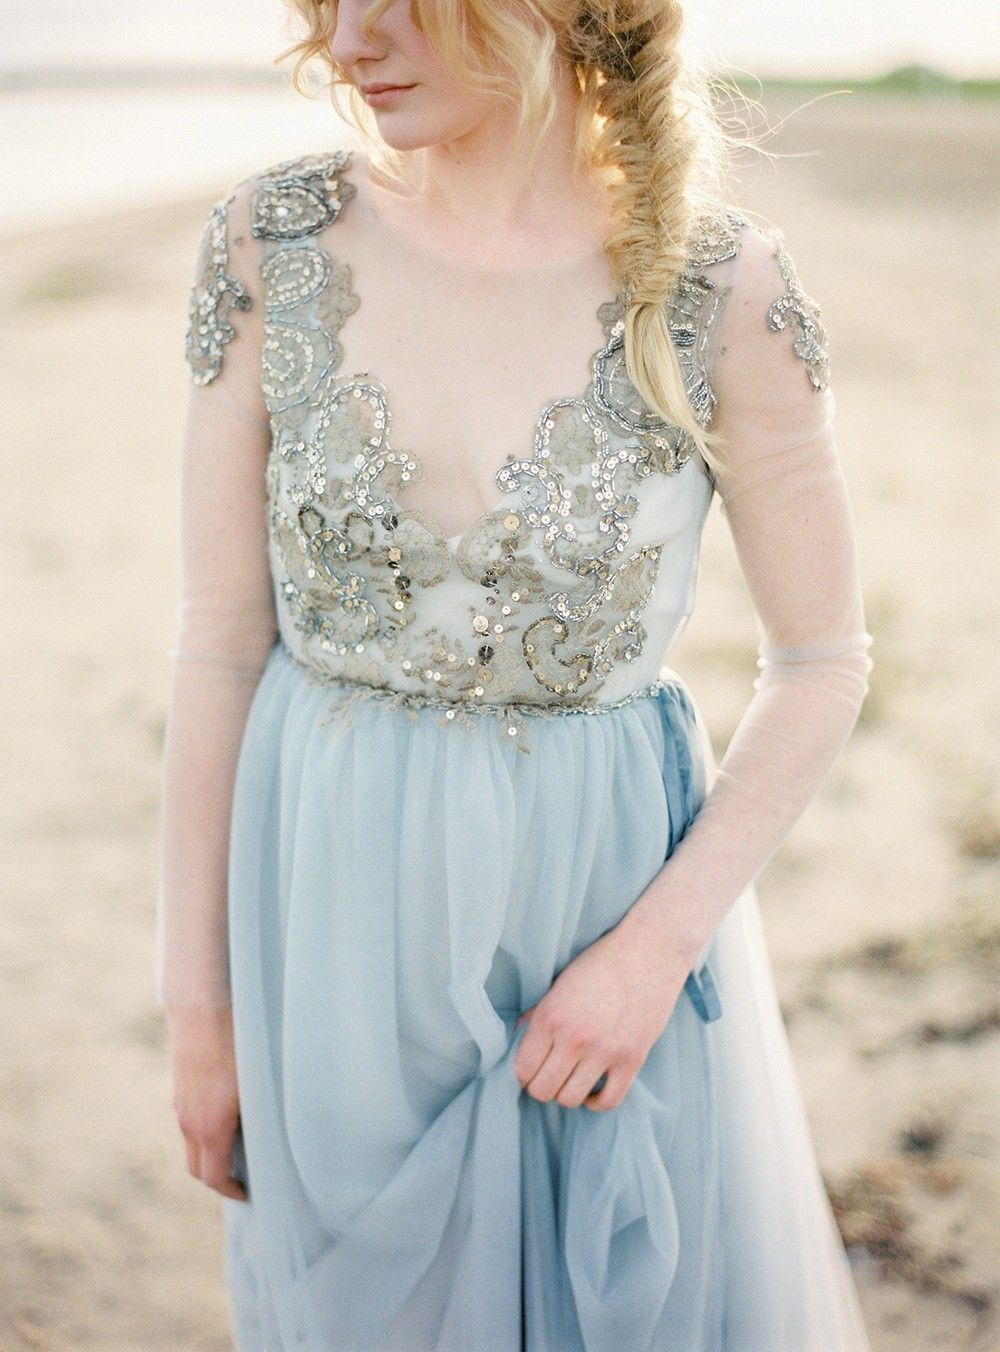 Coastal Wedding in an Embellished Gown by 2 Brides Photography ...